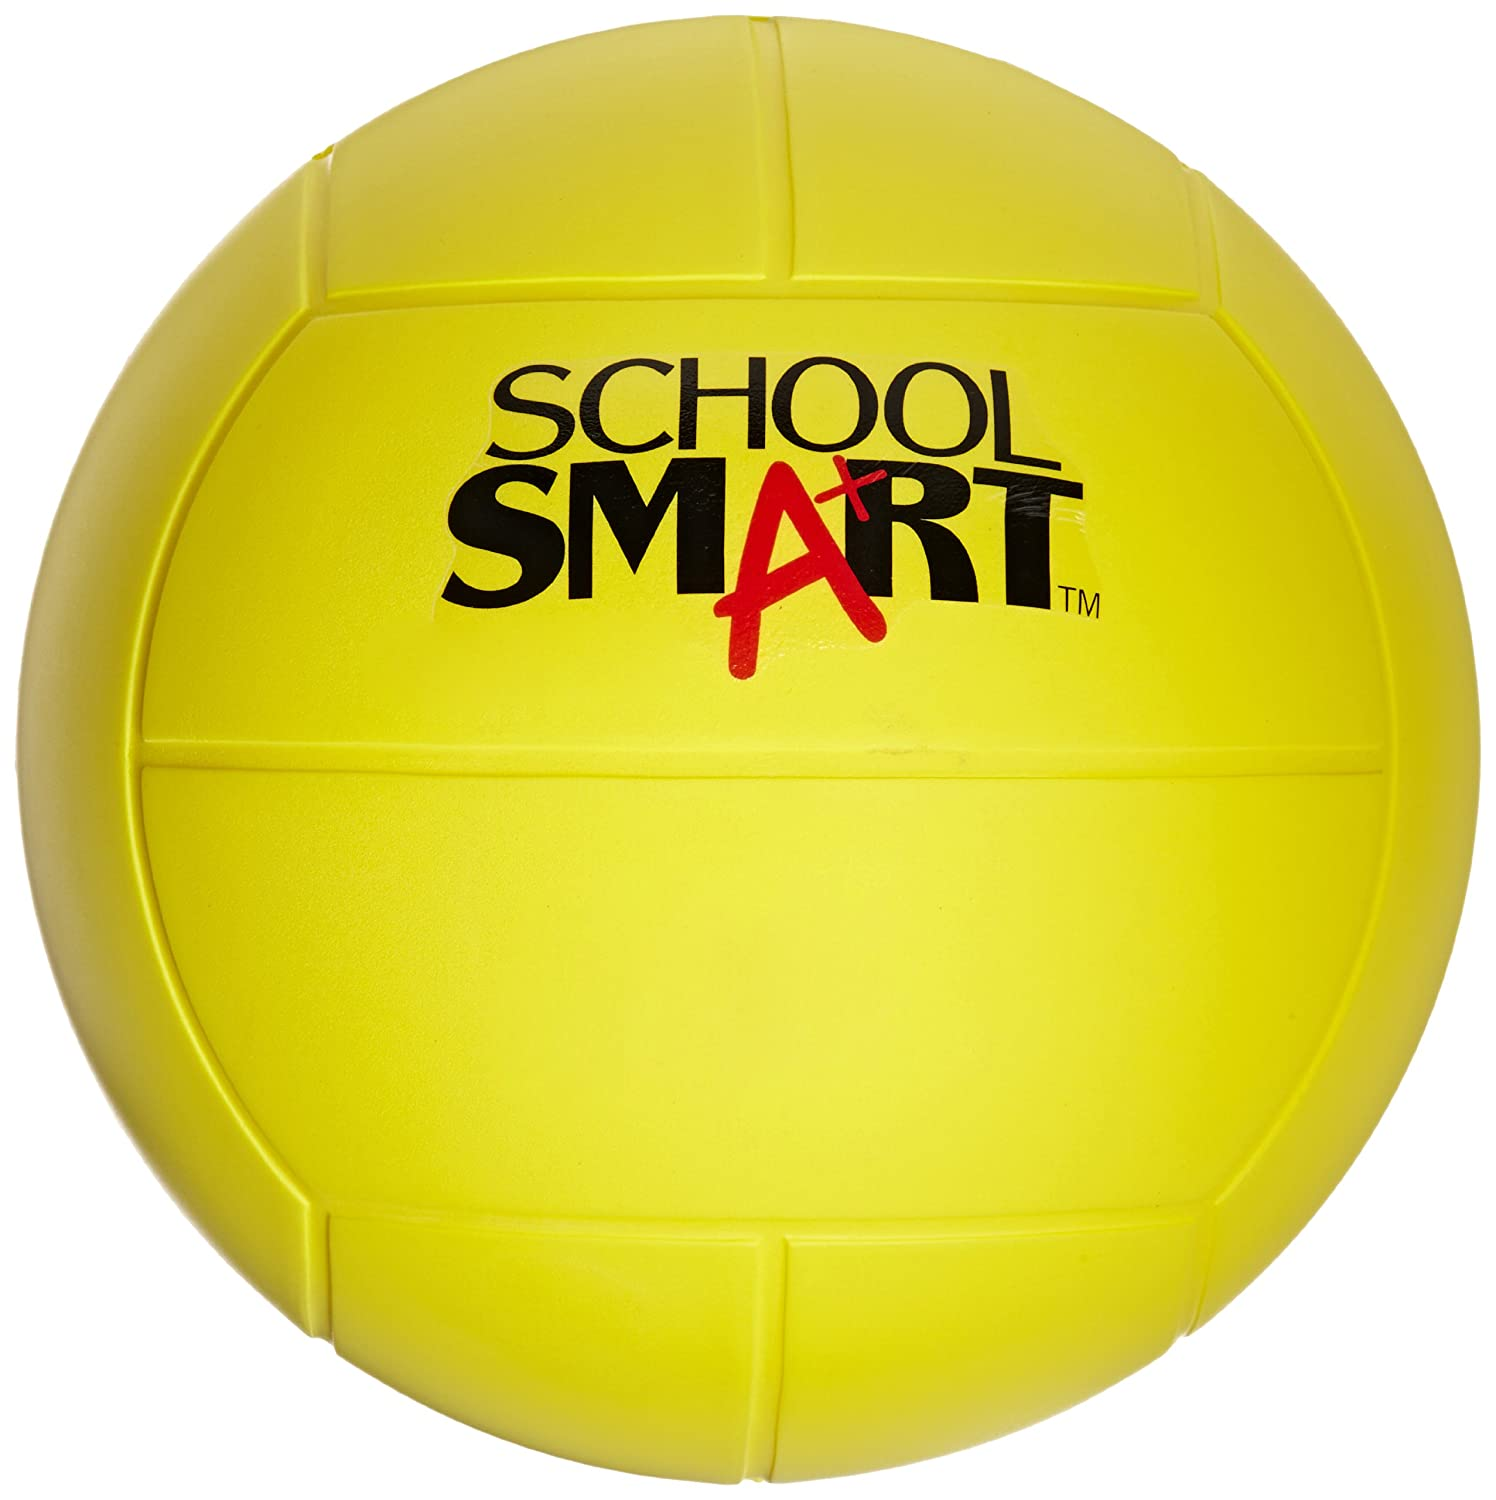 School Smart Coated Today's only Foam inch Volleyball 190mm Nippon regular agency 7.5